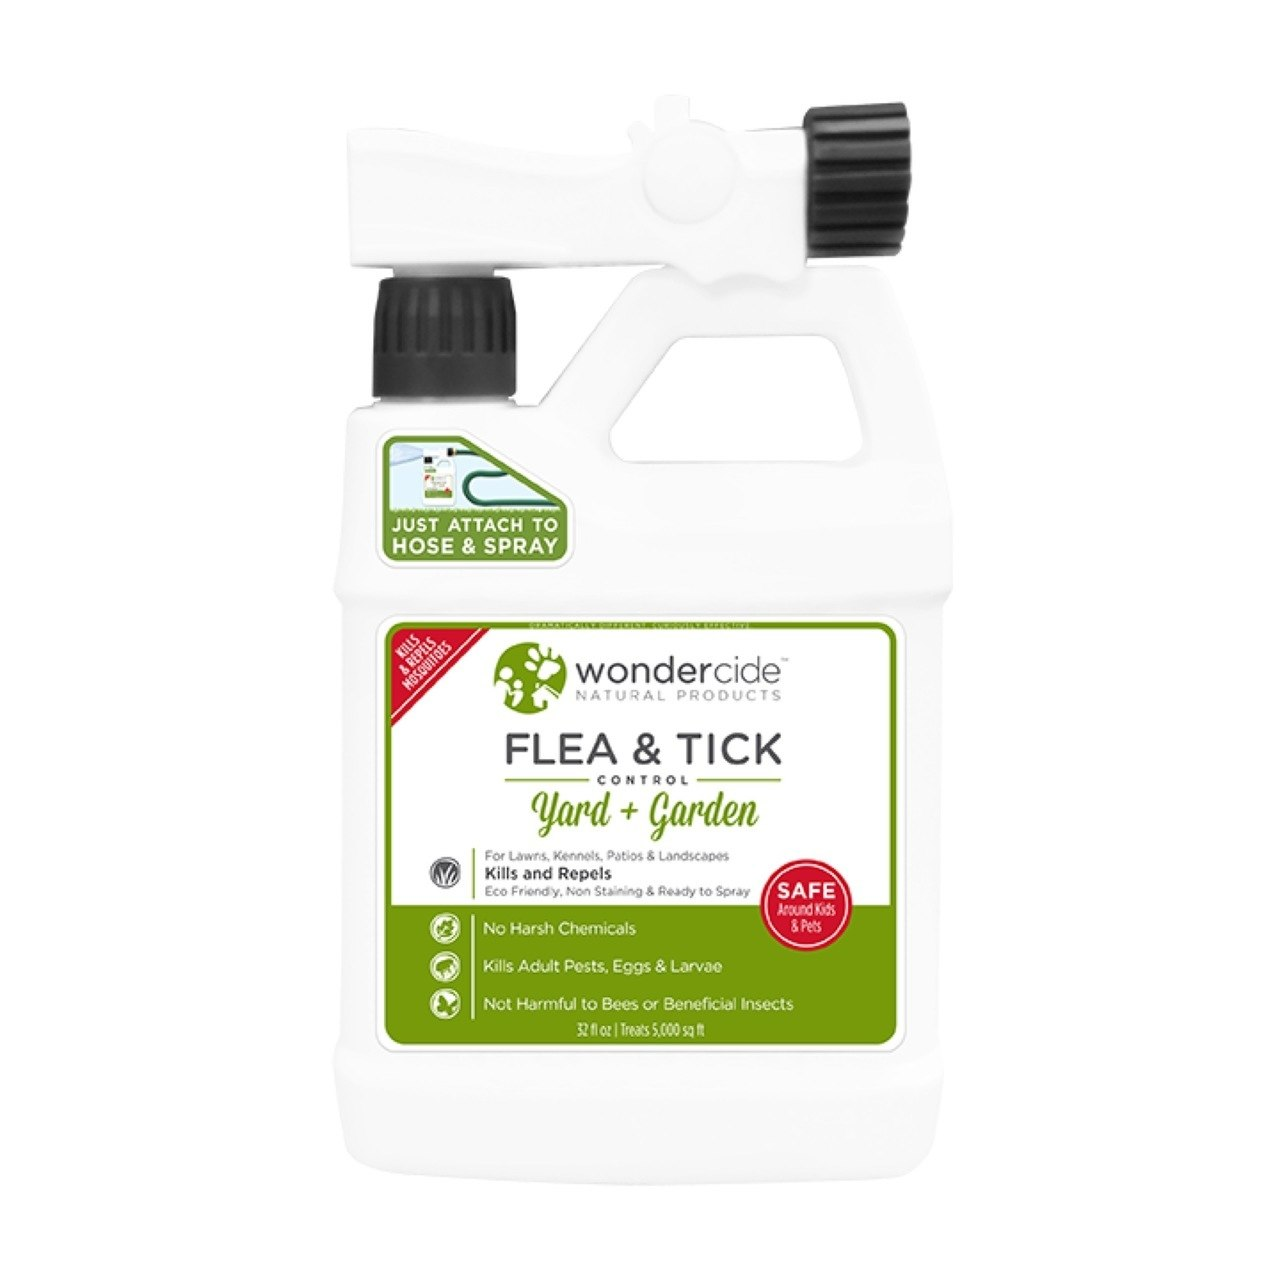 Wondercide Flea & Tick Control Yard & Garden Ready To Use Insecticide, 32-oz (Size: 32-oz) Image